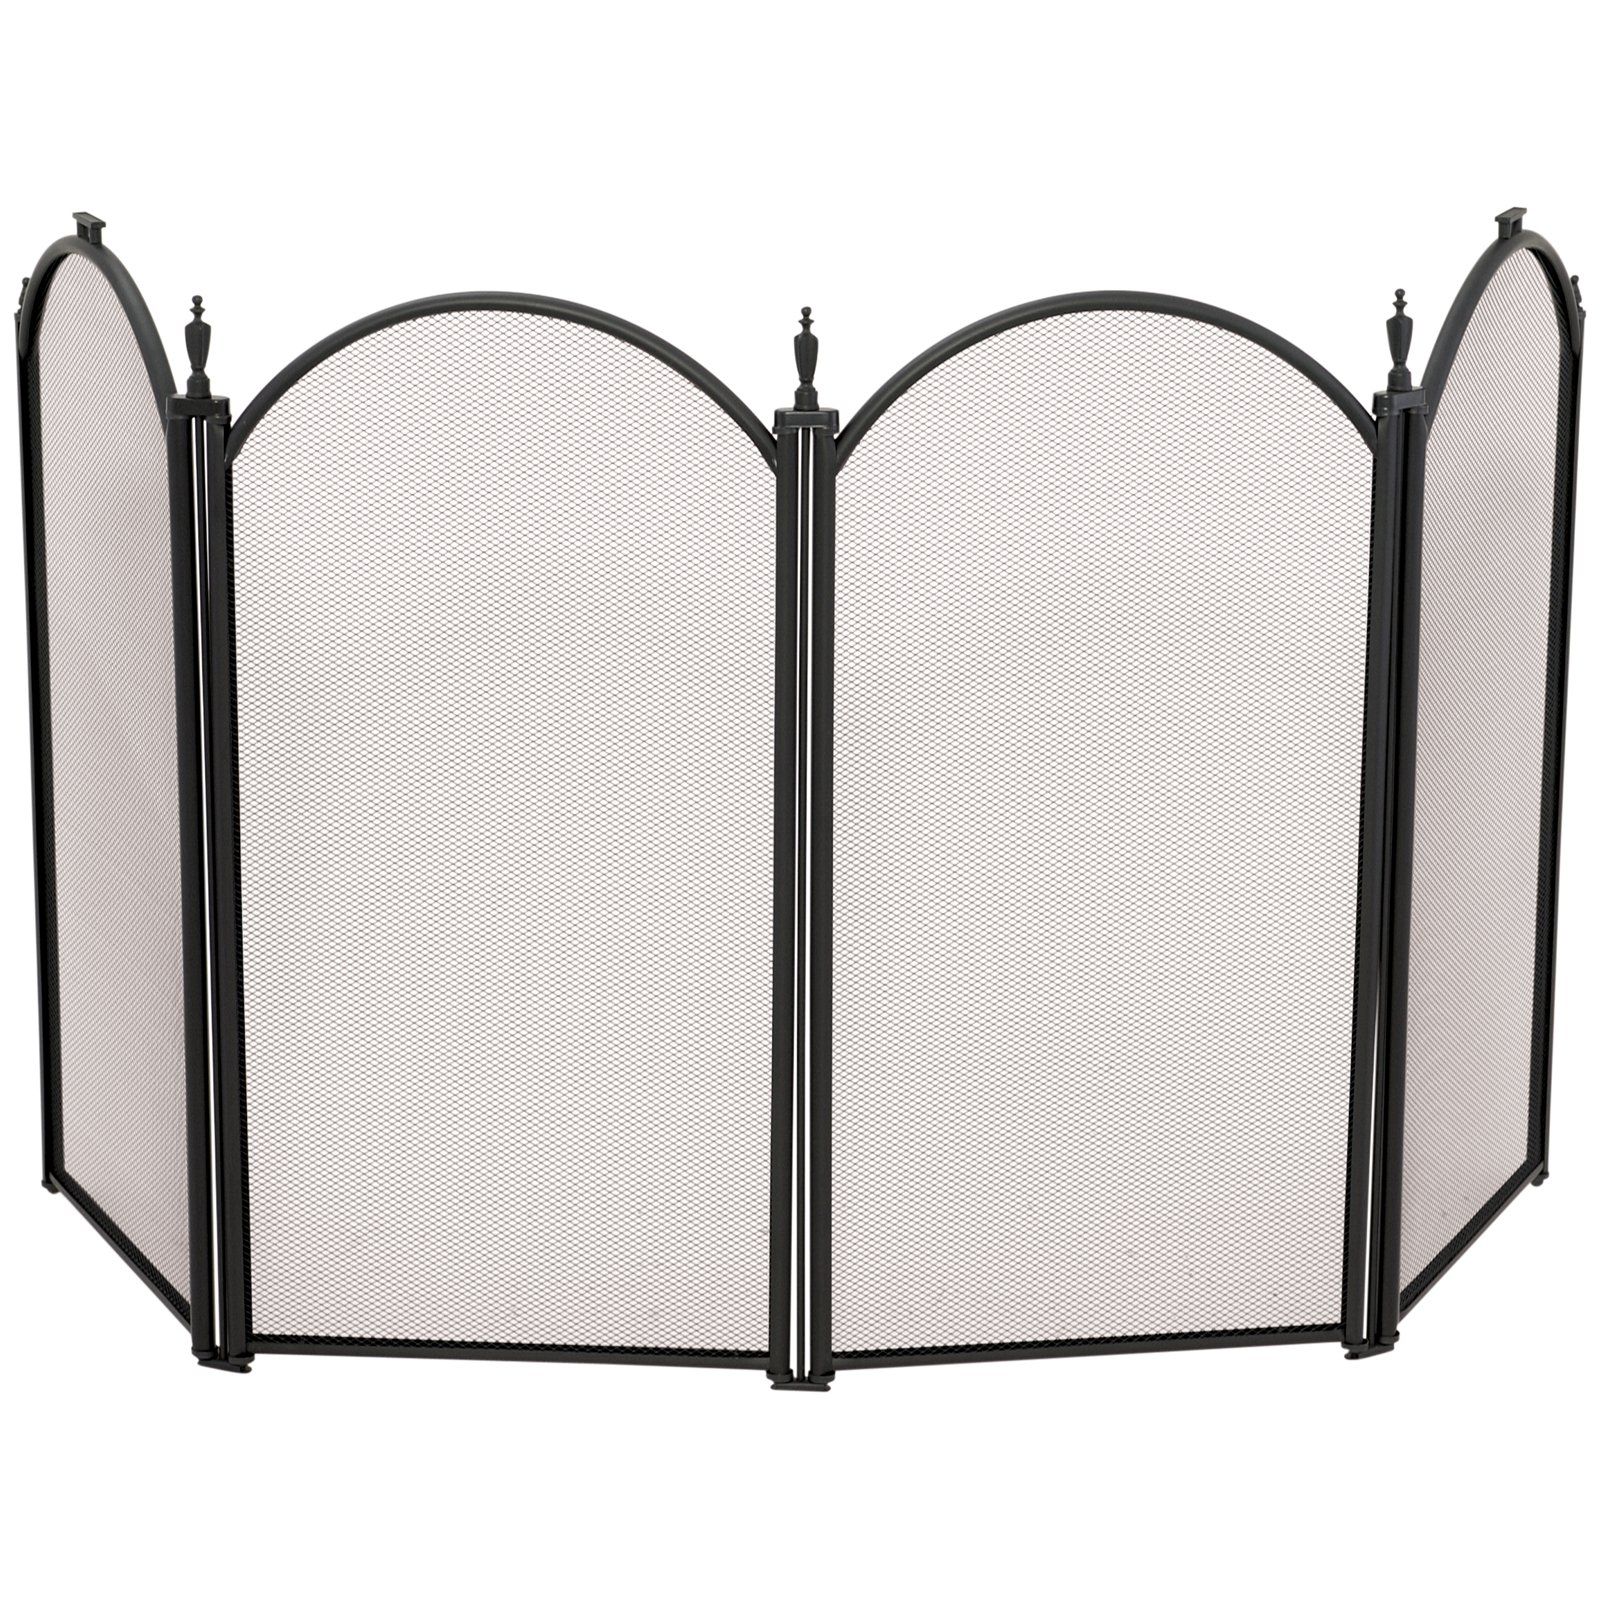 Uniflame 4 Panel Mini Fireplace Screen Walmartcom